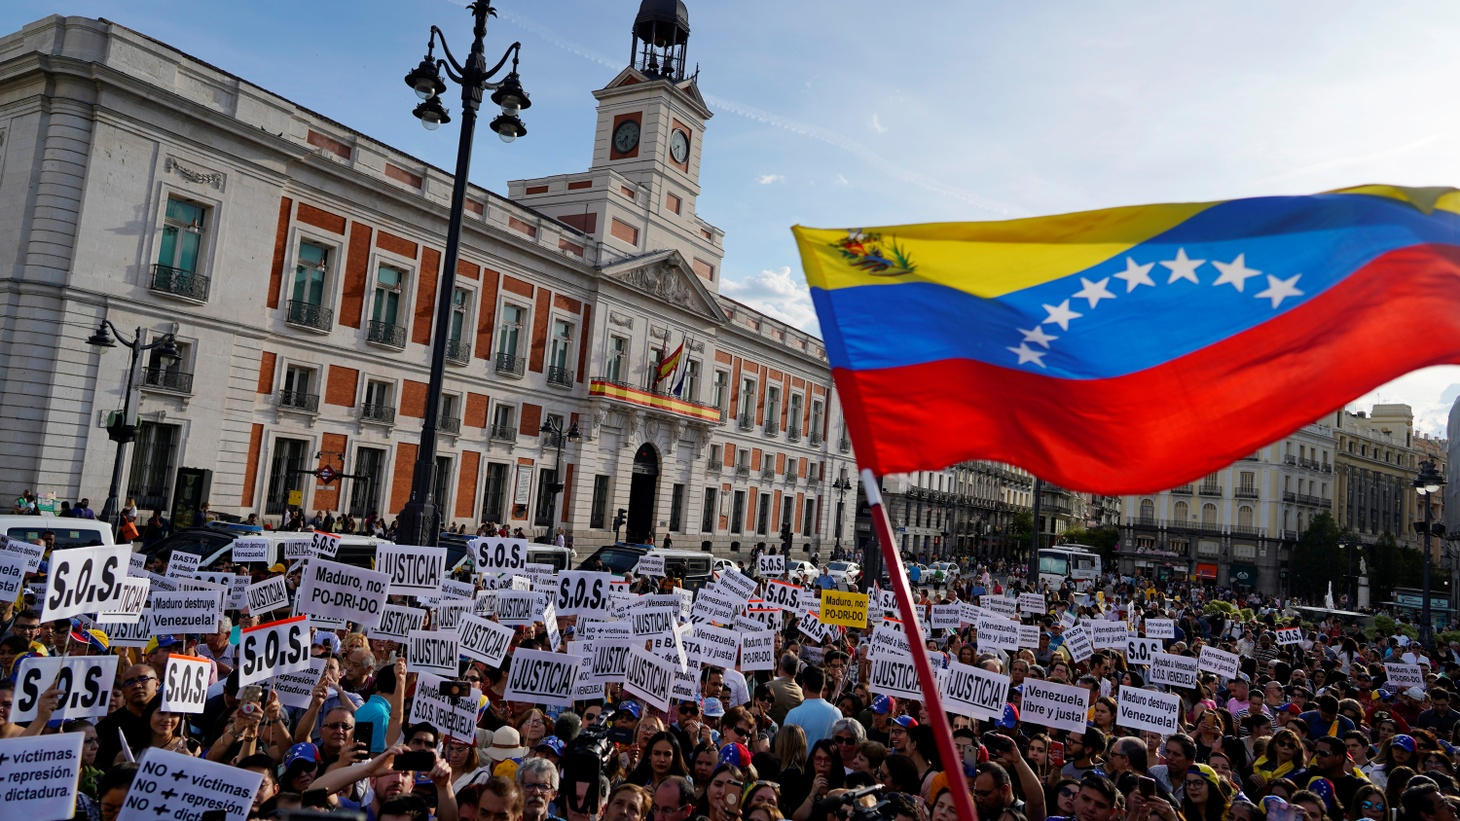 Venezuelans take part in a protest in support of Venezuelan opposition leader Juan Guaido at Puerta del Sol Square in Madrid, Spain, April 30, 2019.